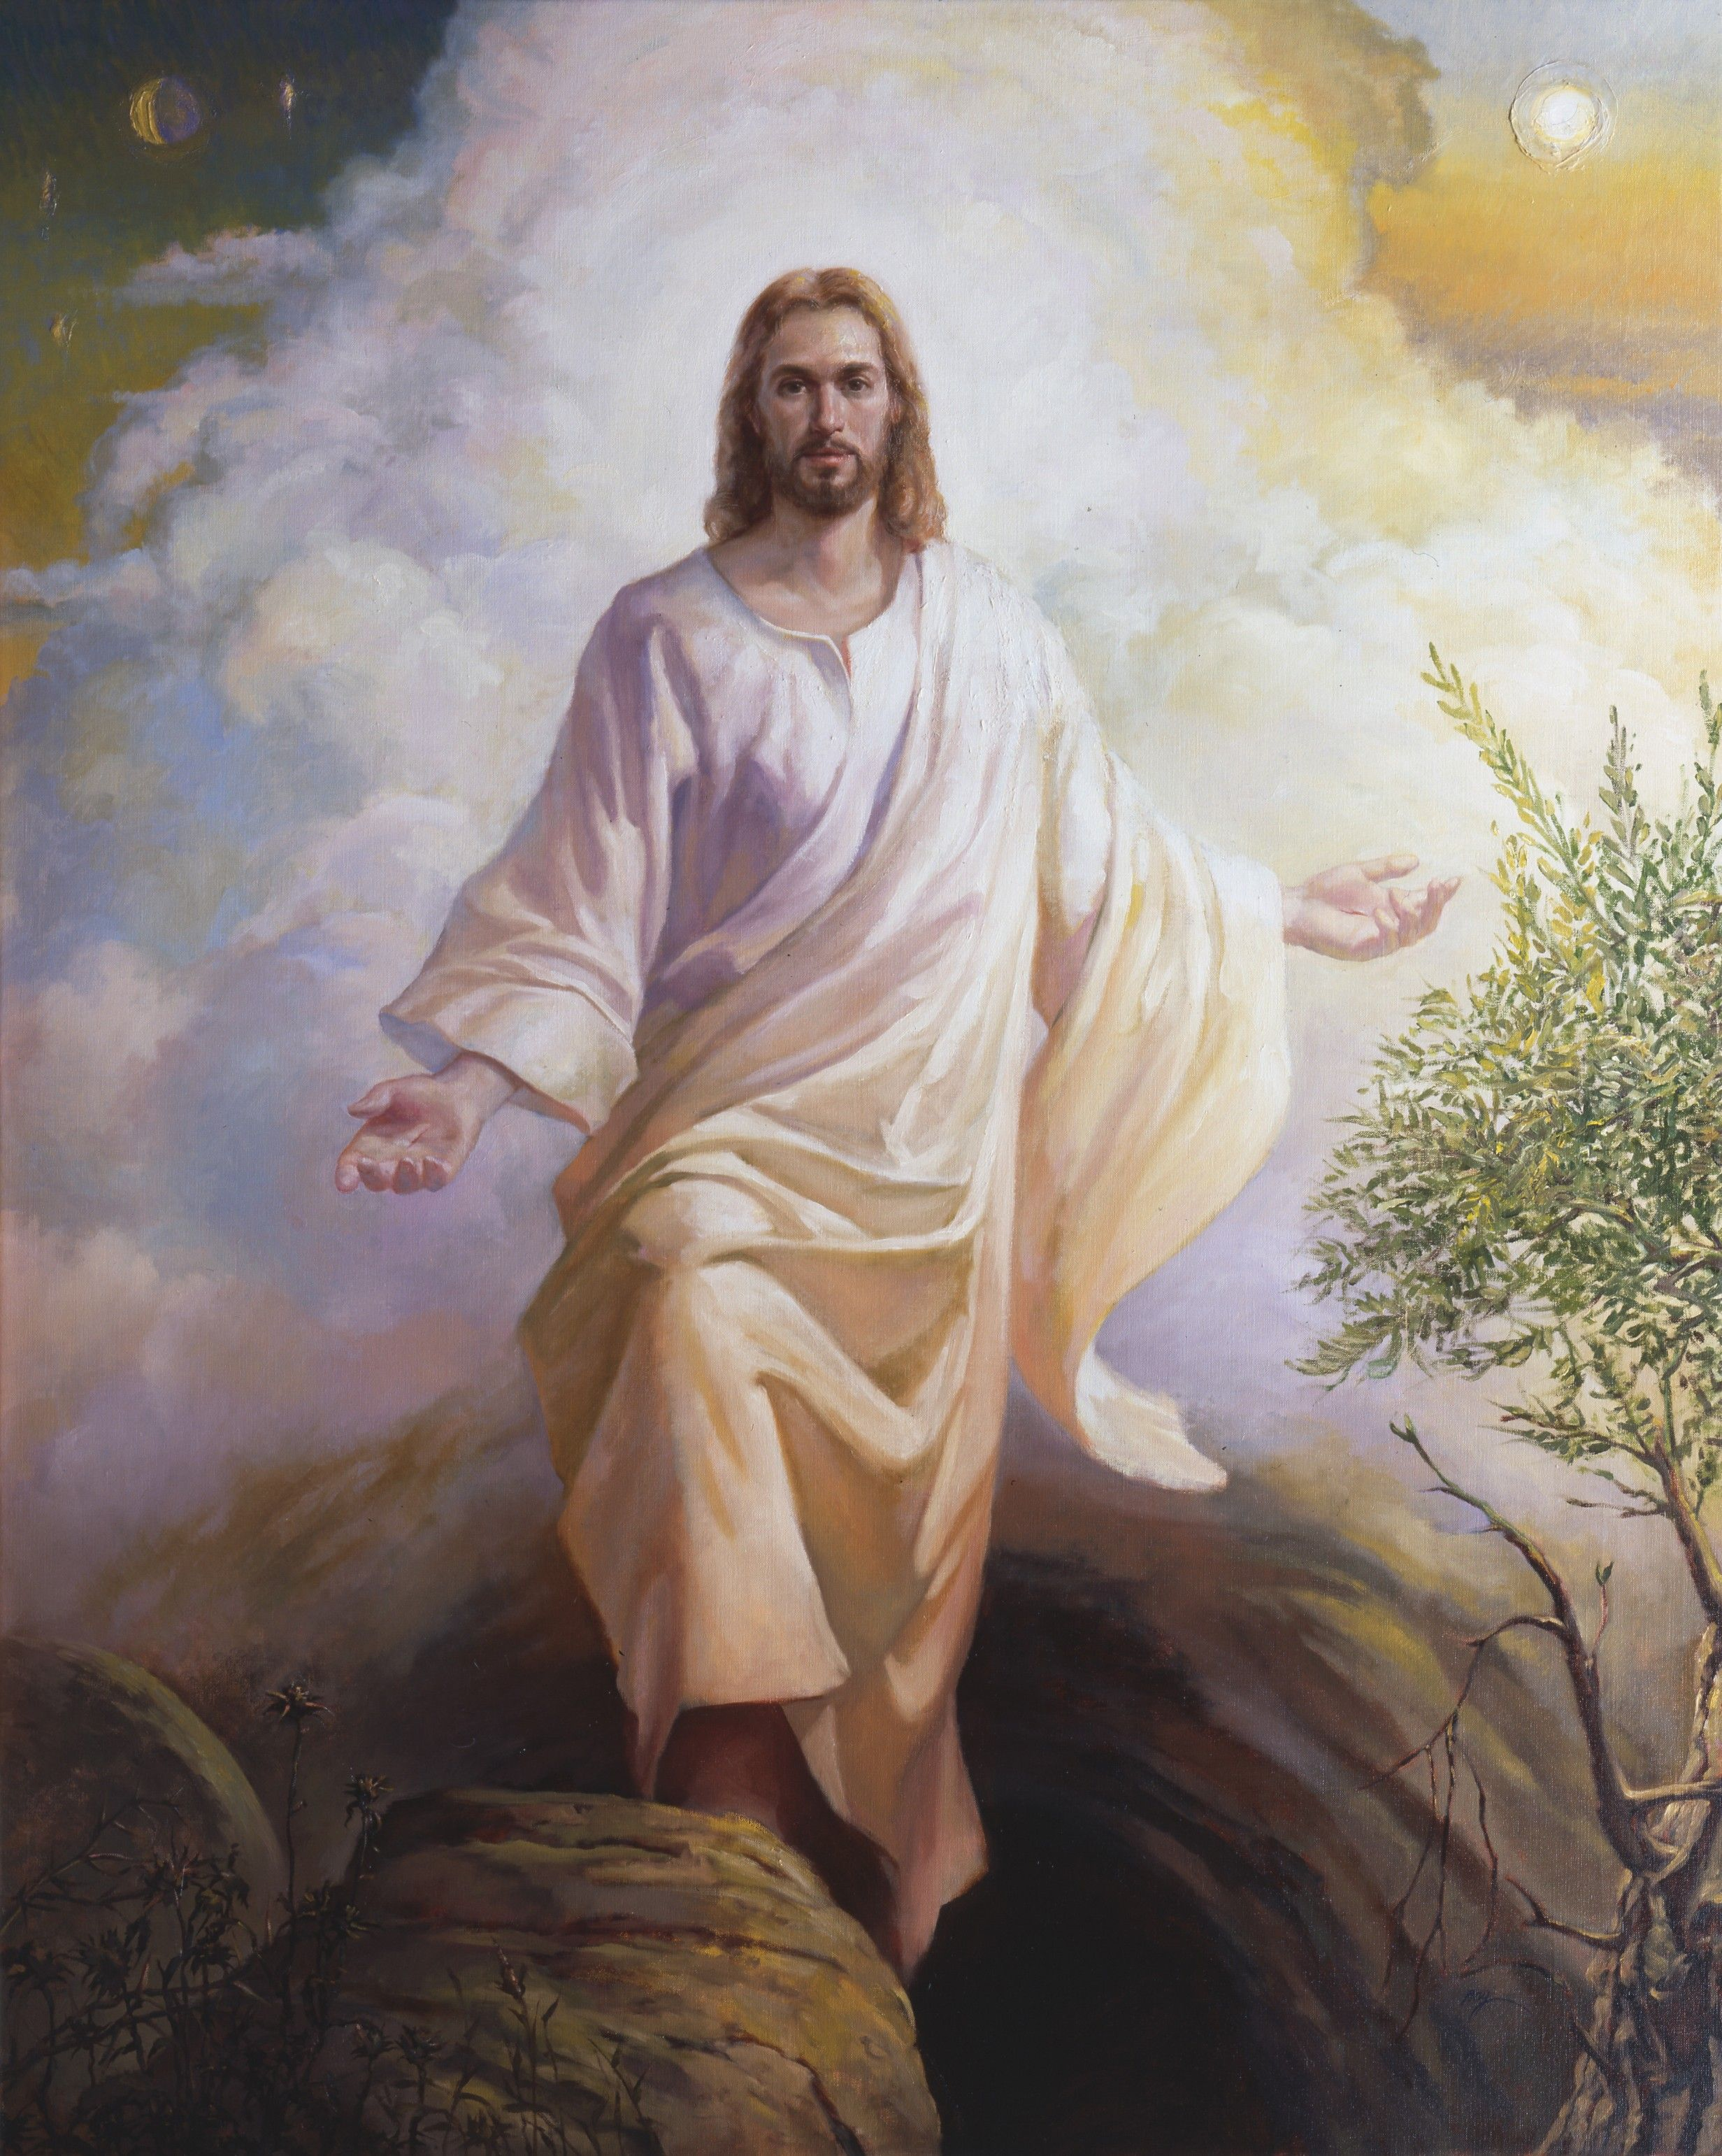 The Resurrected Christ, by Wilson J. Ong